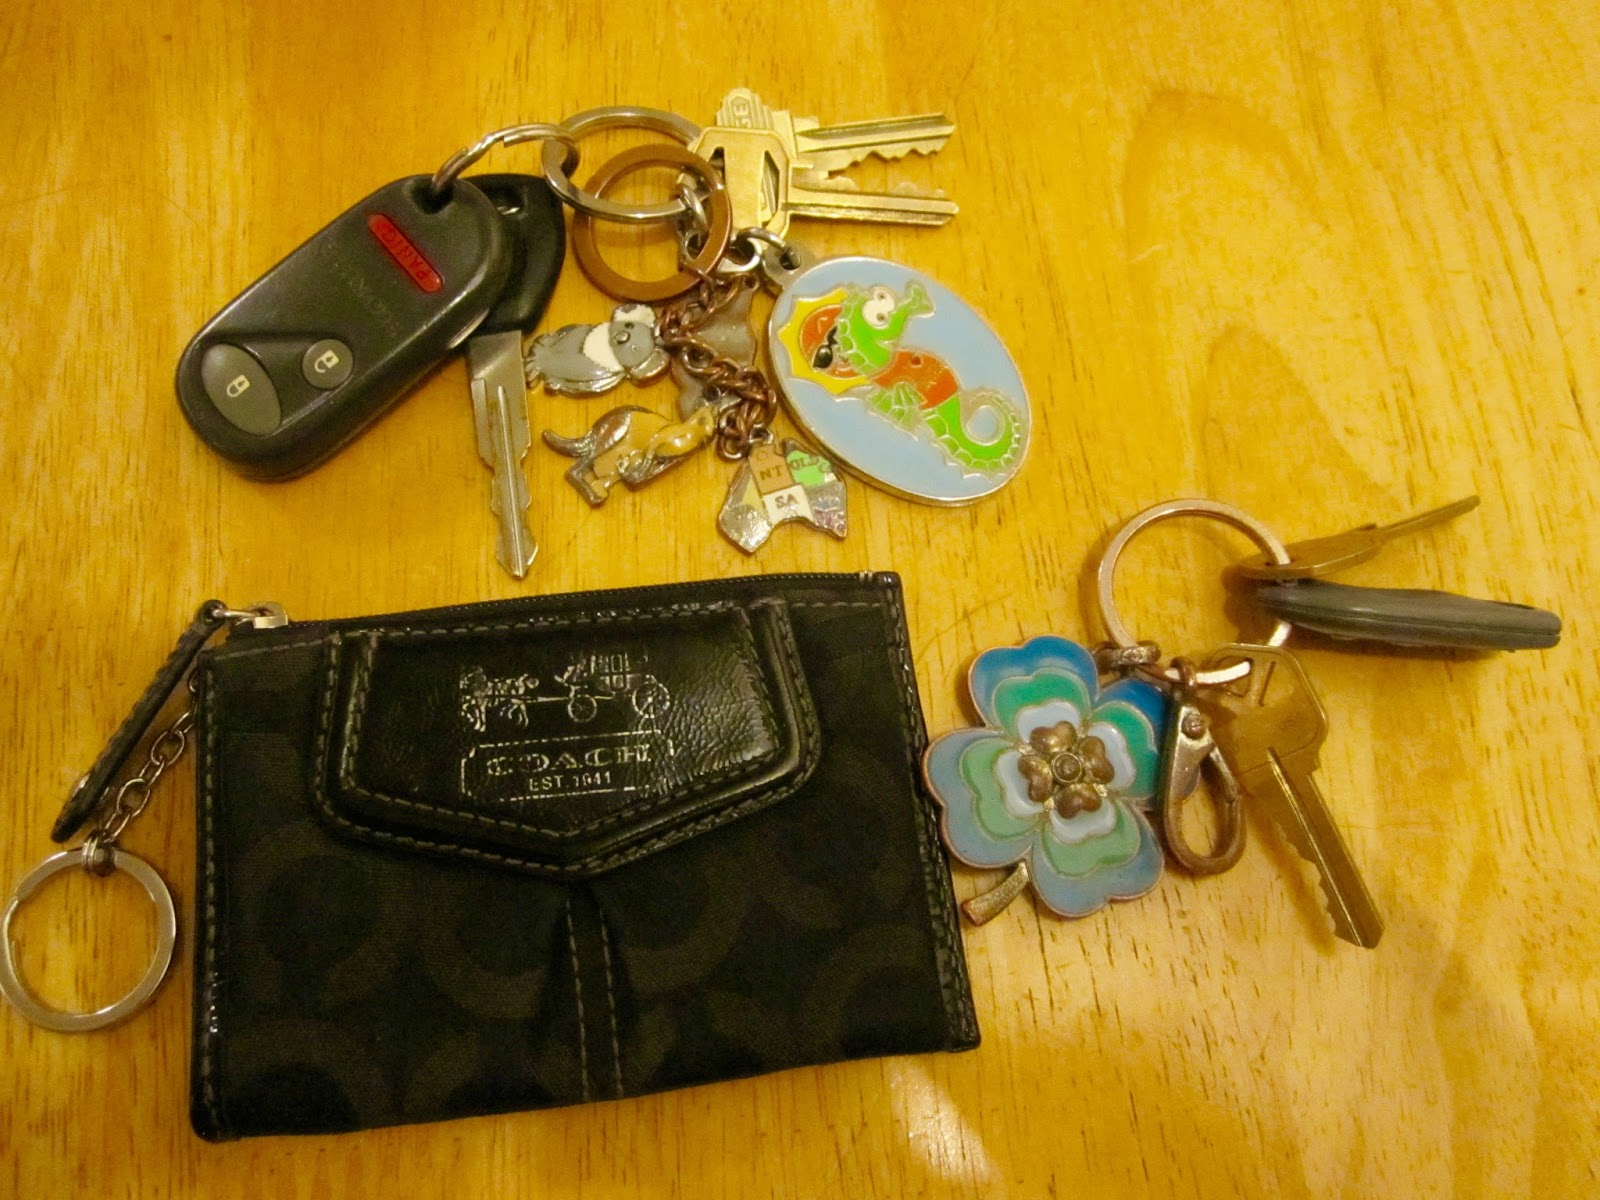 3b4ca5ce5b5 I got this Coach keychain pouch as a gift in college. I use it for my work  key card. I have my apartment keys (fob, door key, mail key) on one  keychain ...